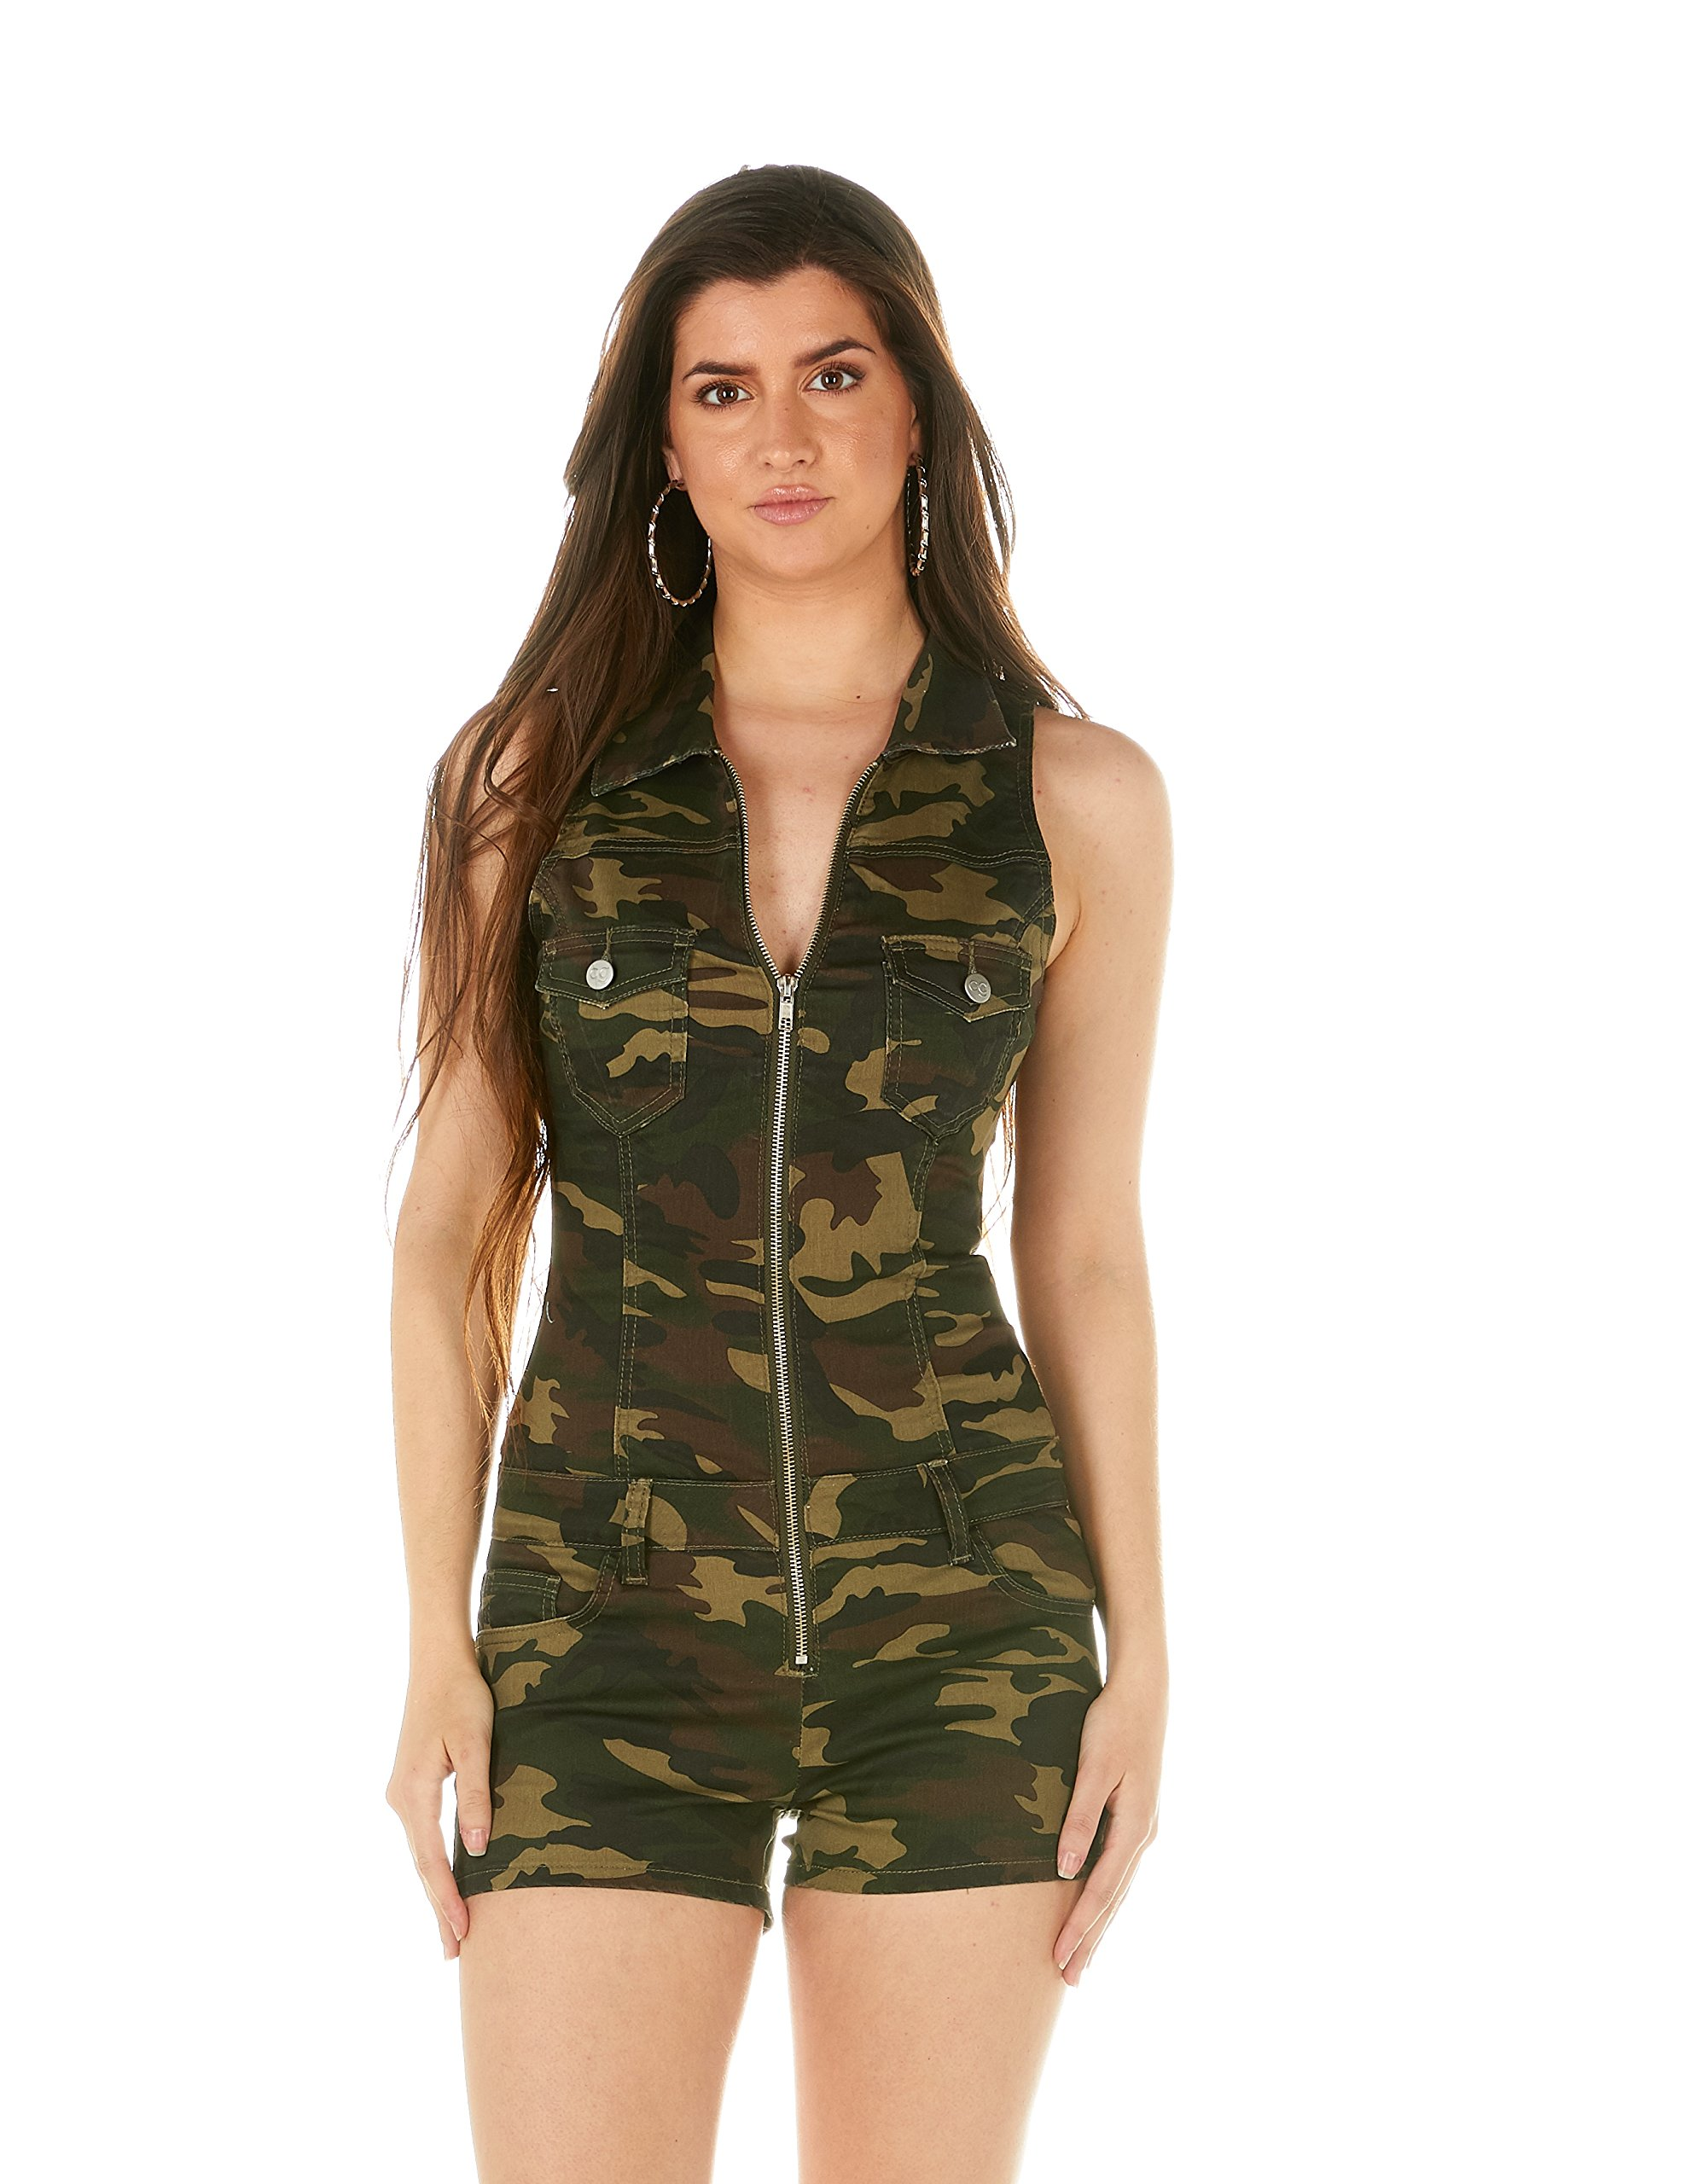 Cover Girl Denim Romper Jeans Shorts Zip Up Sleeveless Cute and Sexy Junior Size SM Camouflage